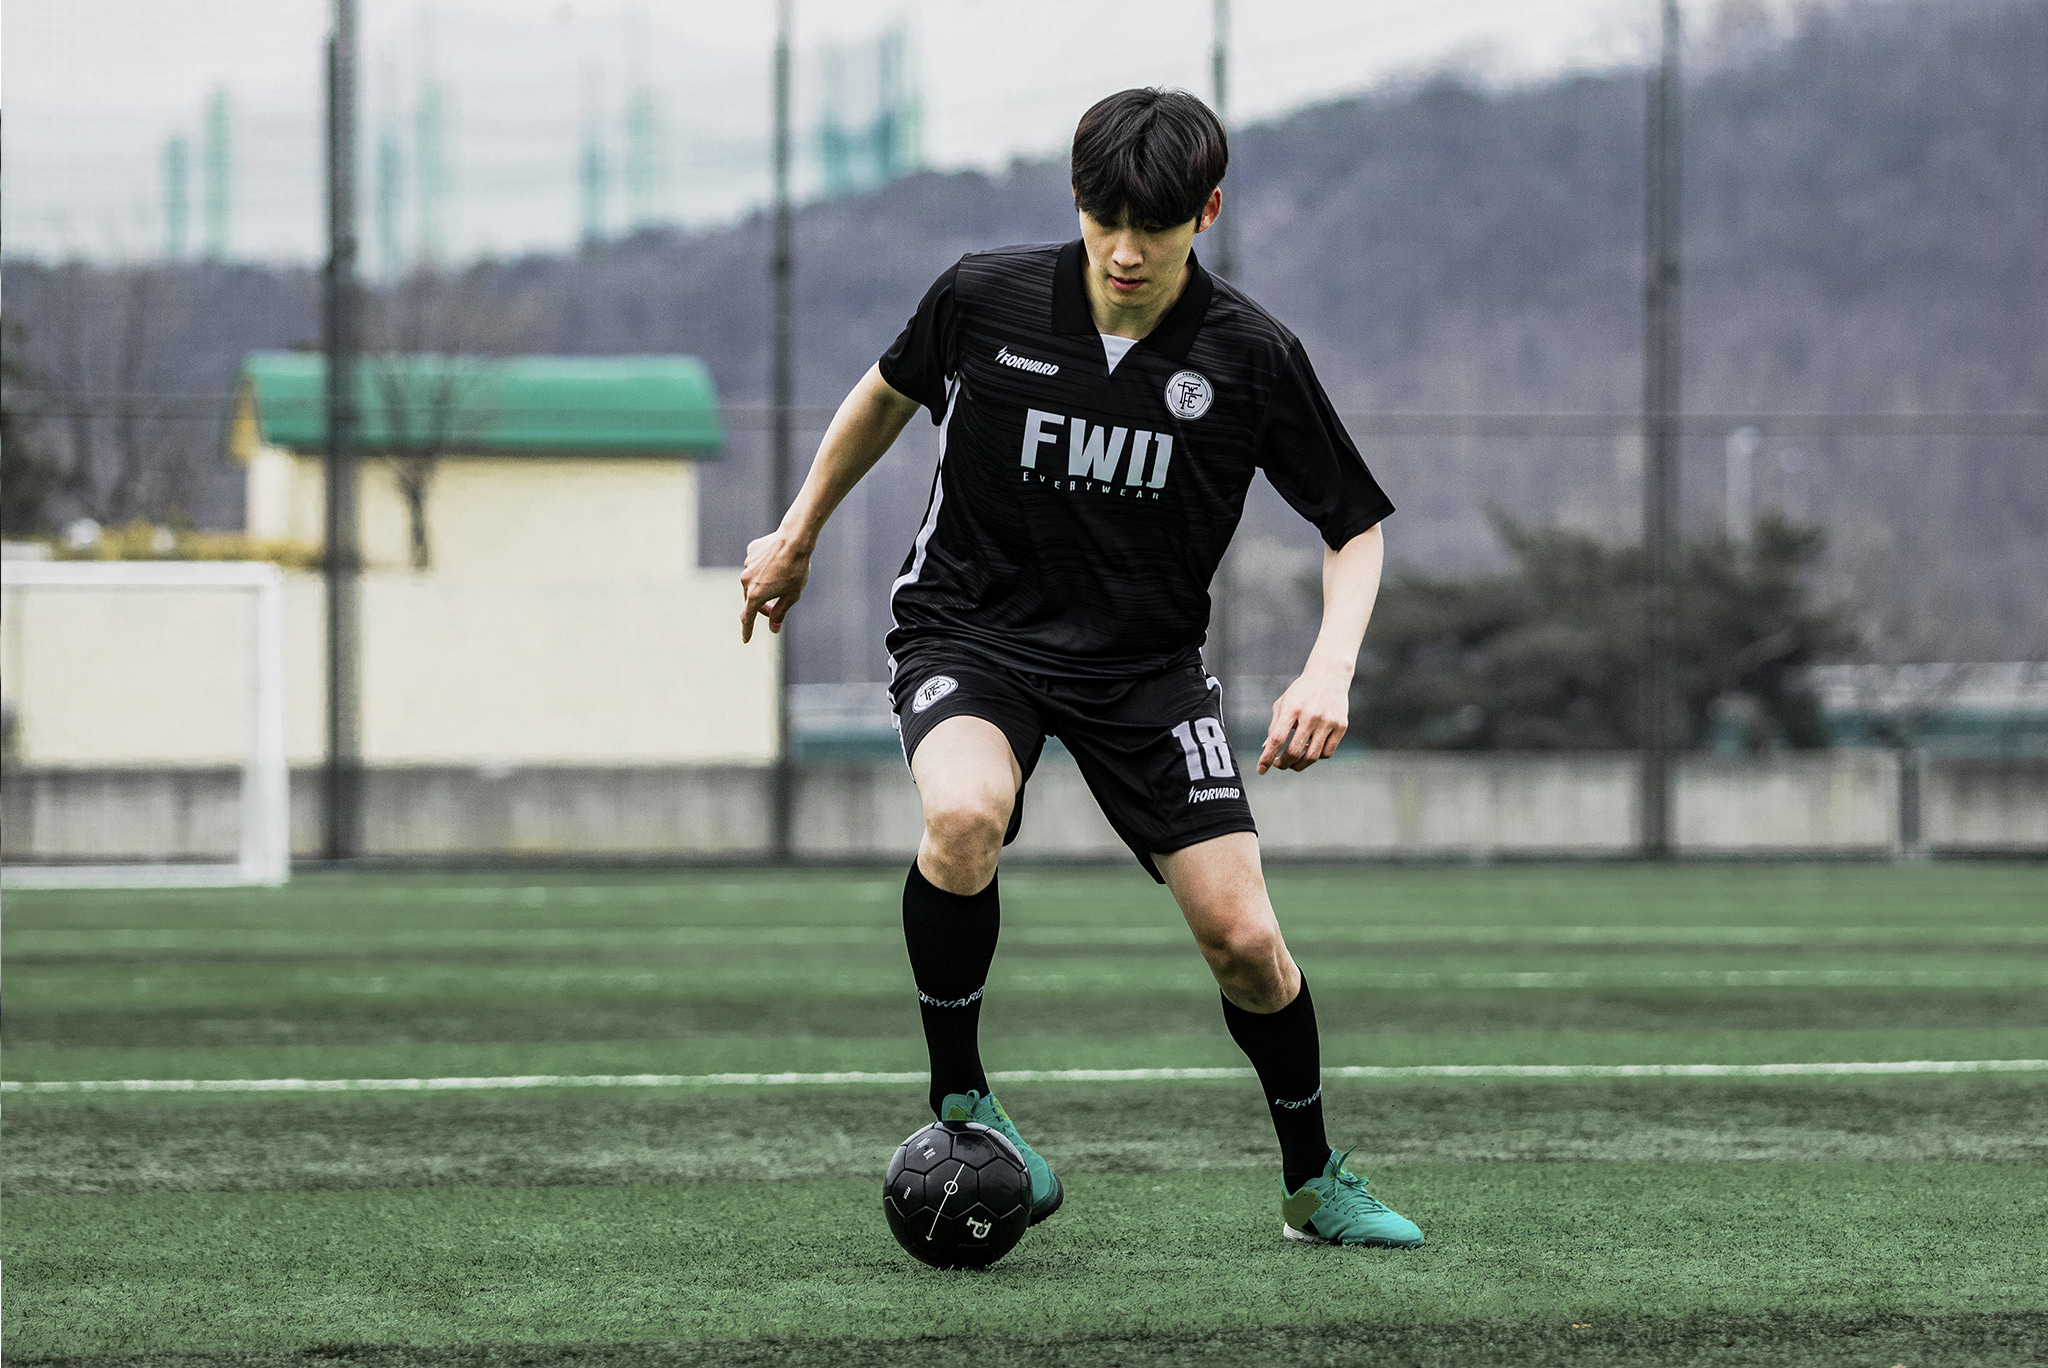 FORWARD FOOTBALL EVERYWEAR 19SS - CLASSIC